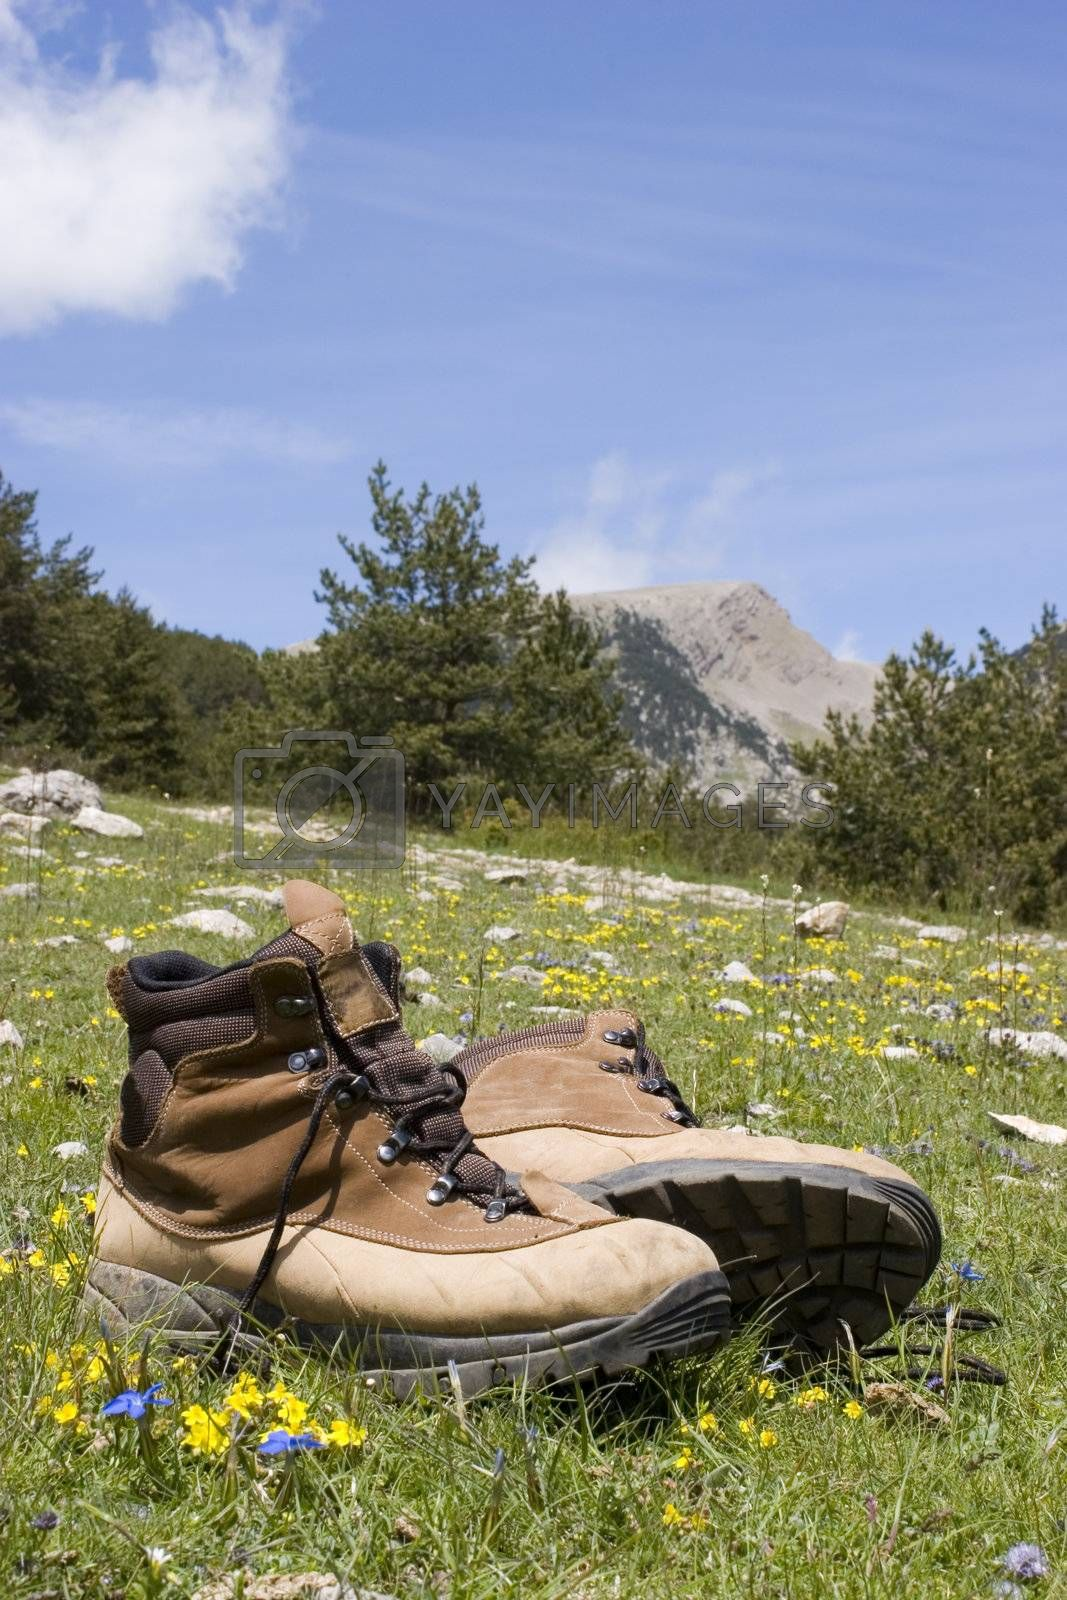 Alpine boots in a meadow with flowers in front of a mountain landscape